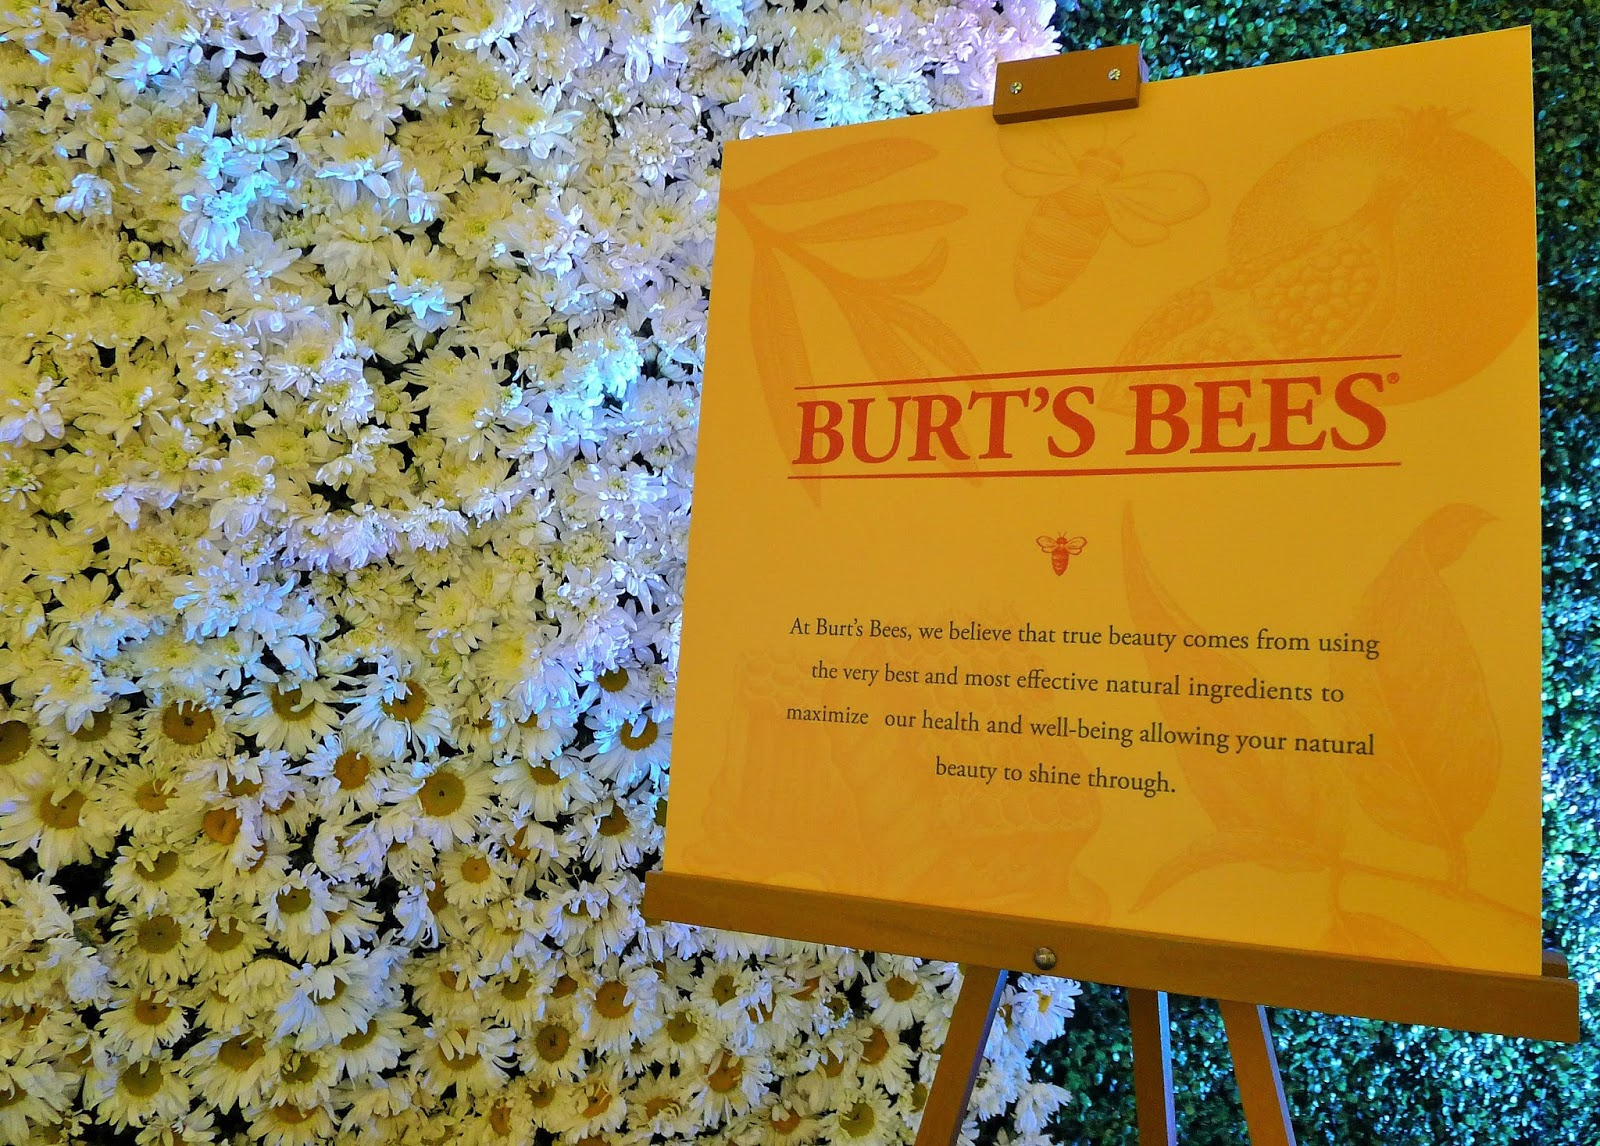 burt's bee's leaving the hive Burts bees: leaving the hive case solution, rapid growth is driving burt's bees' natural body care products in mass production sales channels, products and brands.